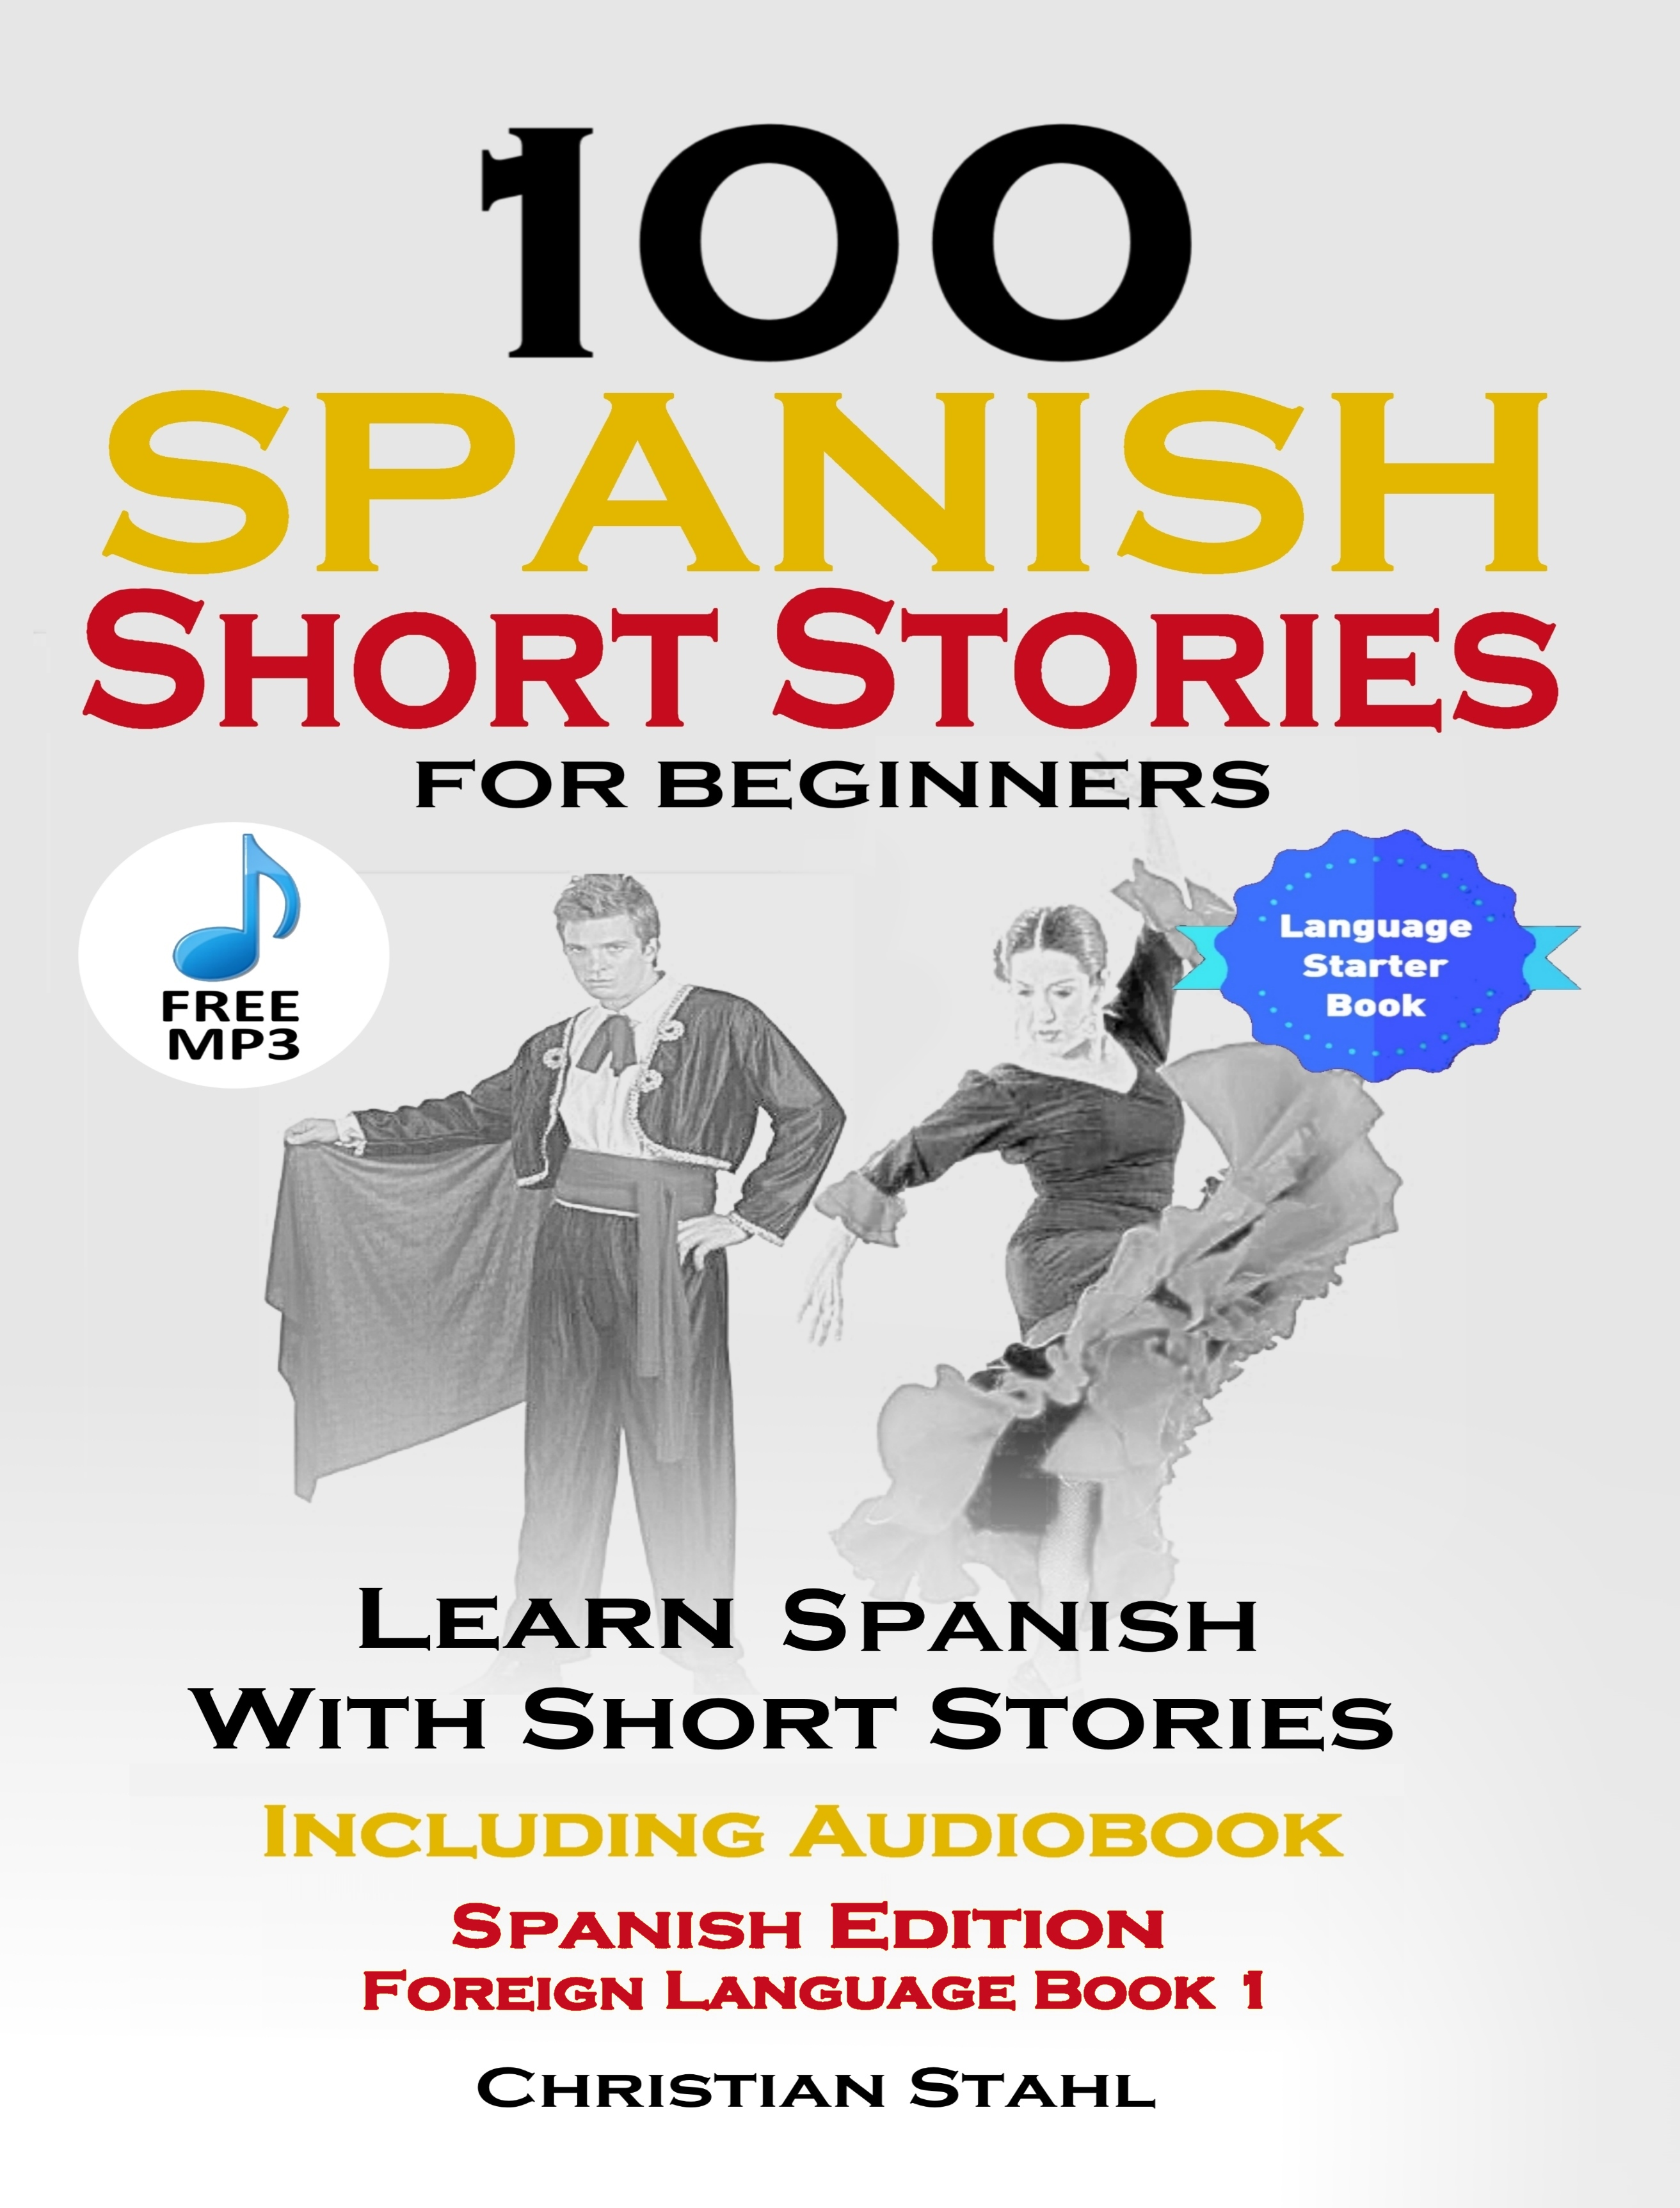 100 Spanish Short Stories for Beginners Learn Spanish with Stories  Including Audiobook, an Ebook by Christian Stahl